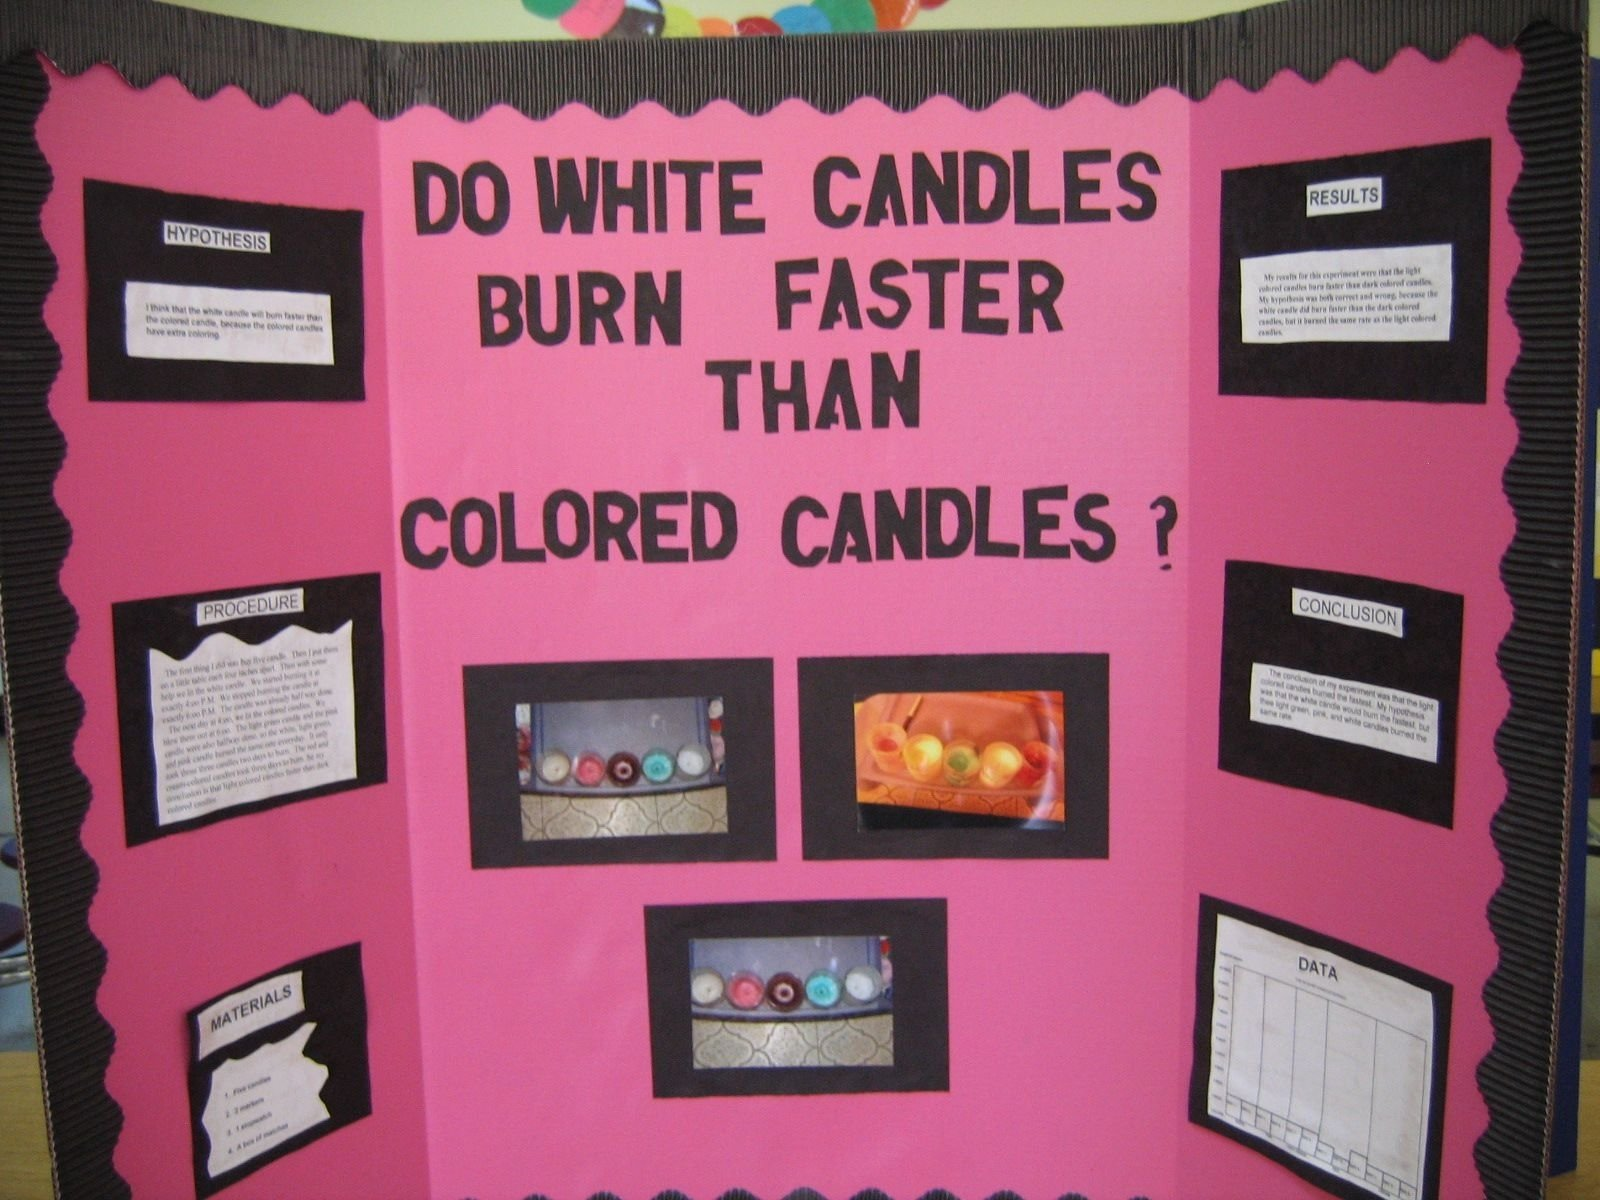 10 Most Recommended Science Fair Projects For 8Th Graders Winning Ideas science fair projects for 8th grade google search science fair 20